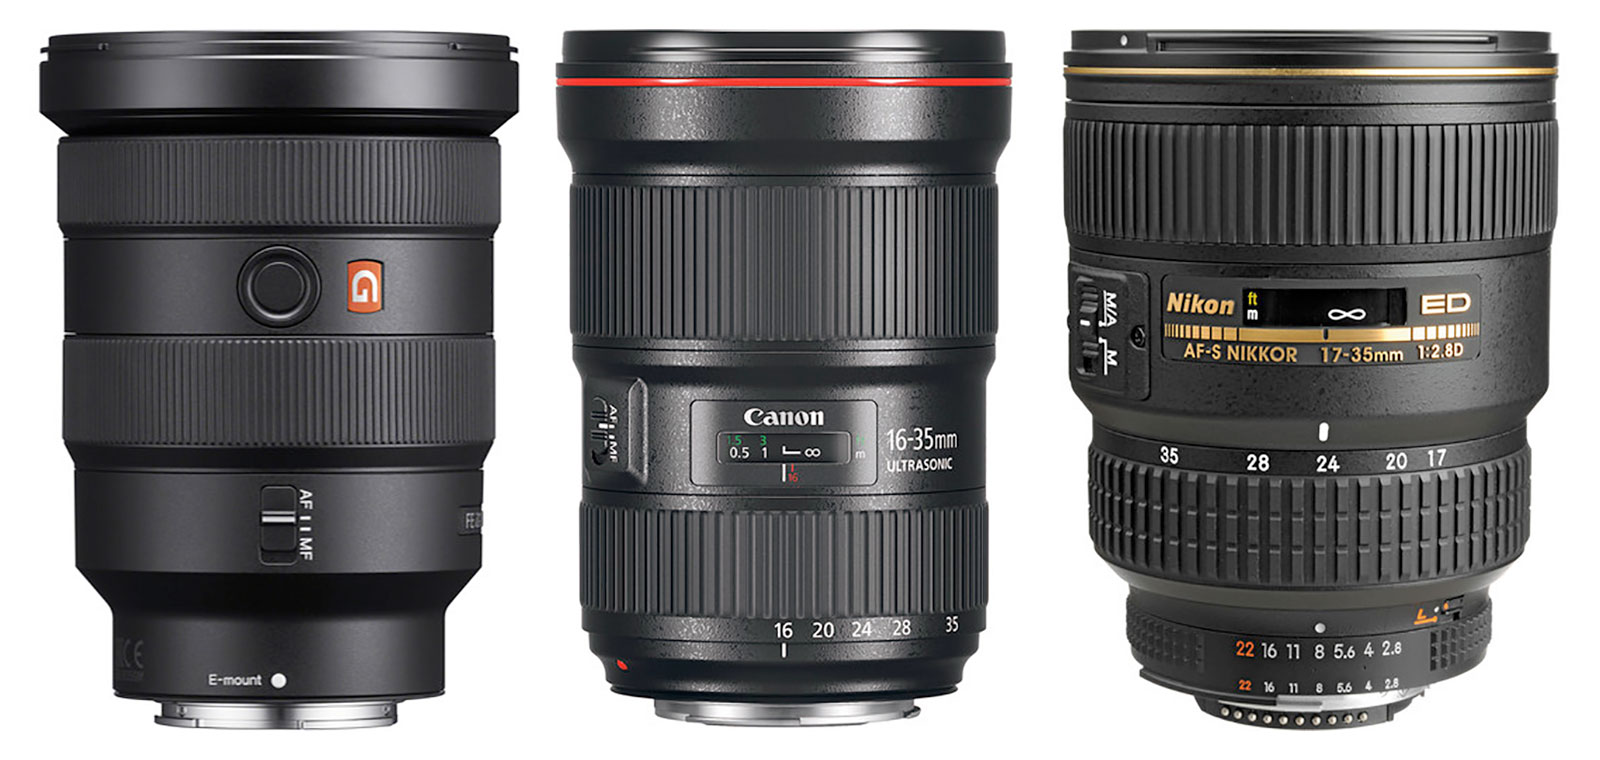 16-35mm F2.8 zooms